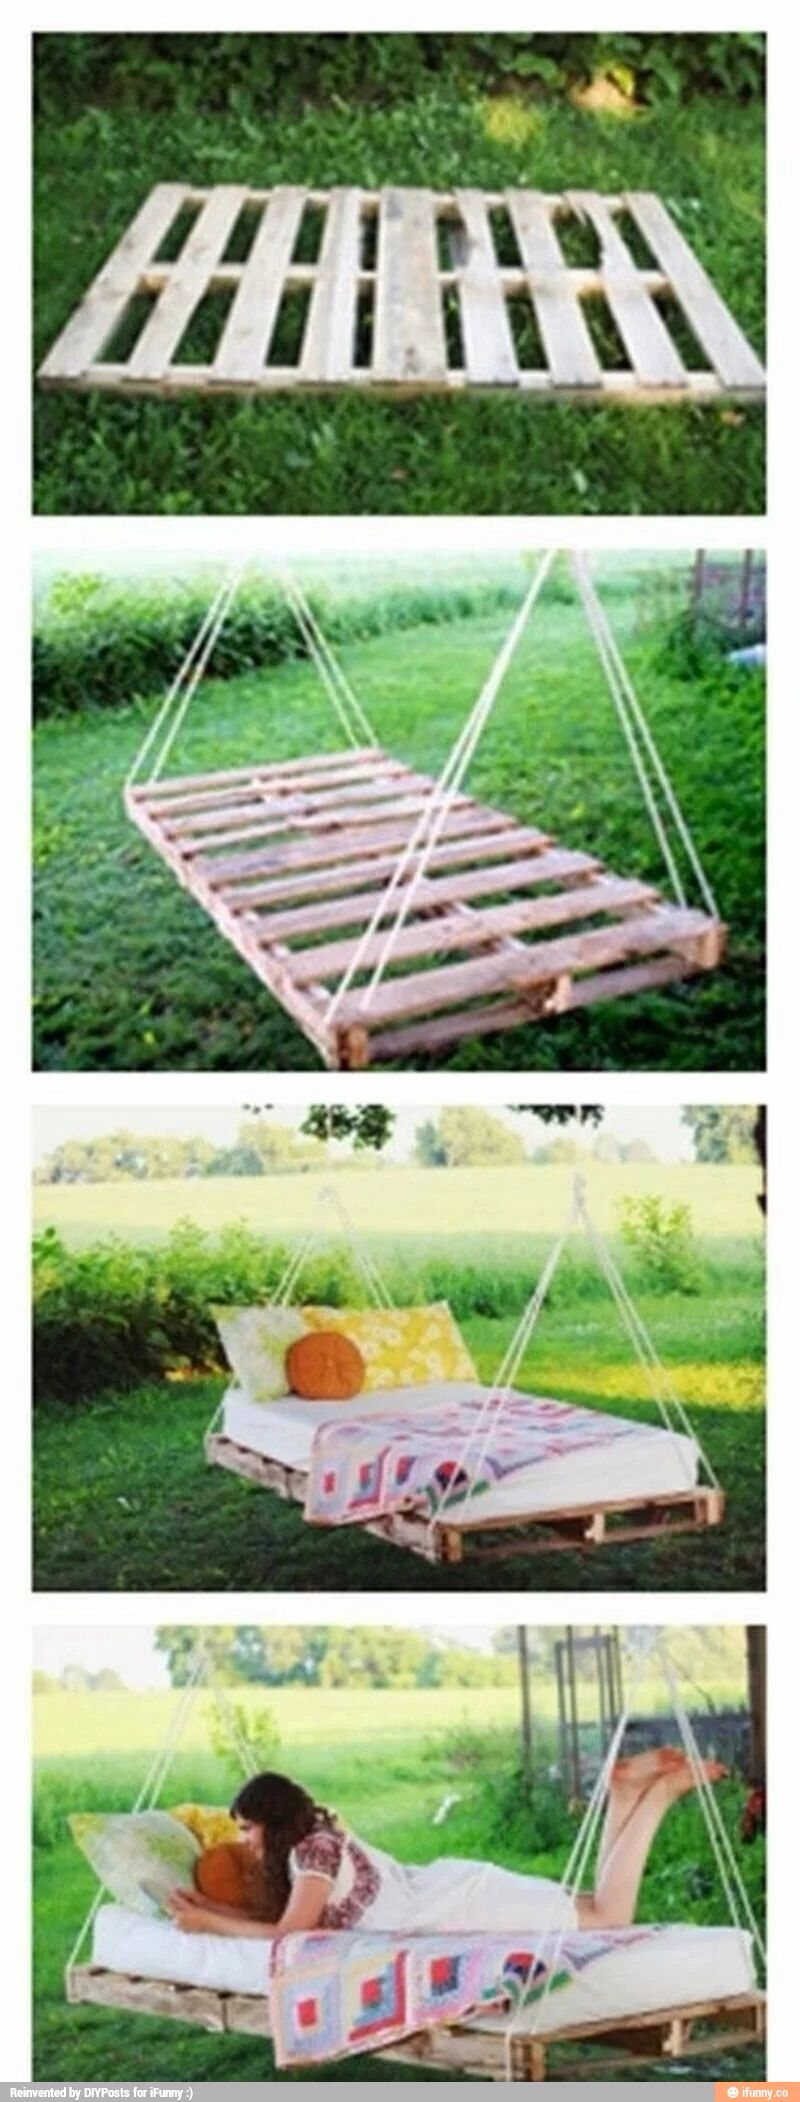 how to use old planks diy outdoor bed string lights pinterest garten ideen und garten ideen. Black Bedroom Furniture Sets. Home Design Ideas